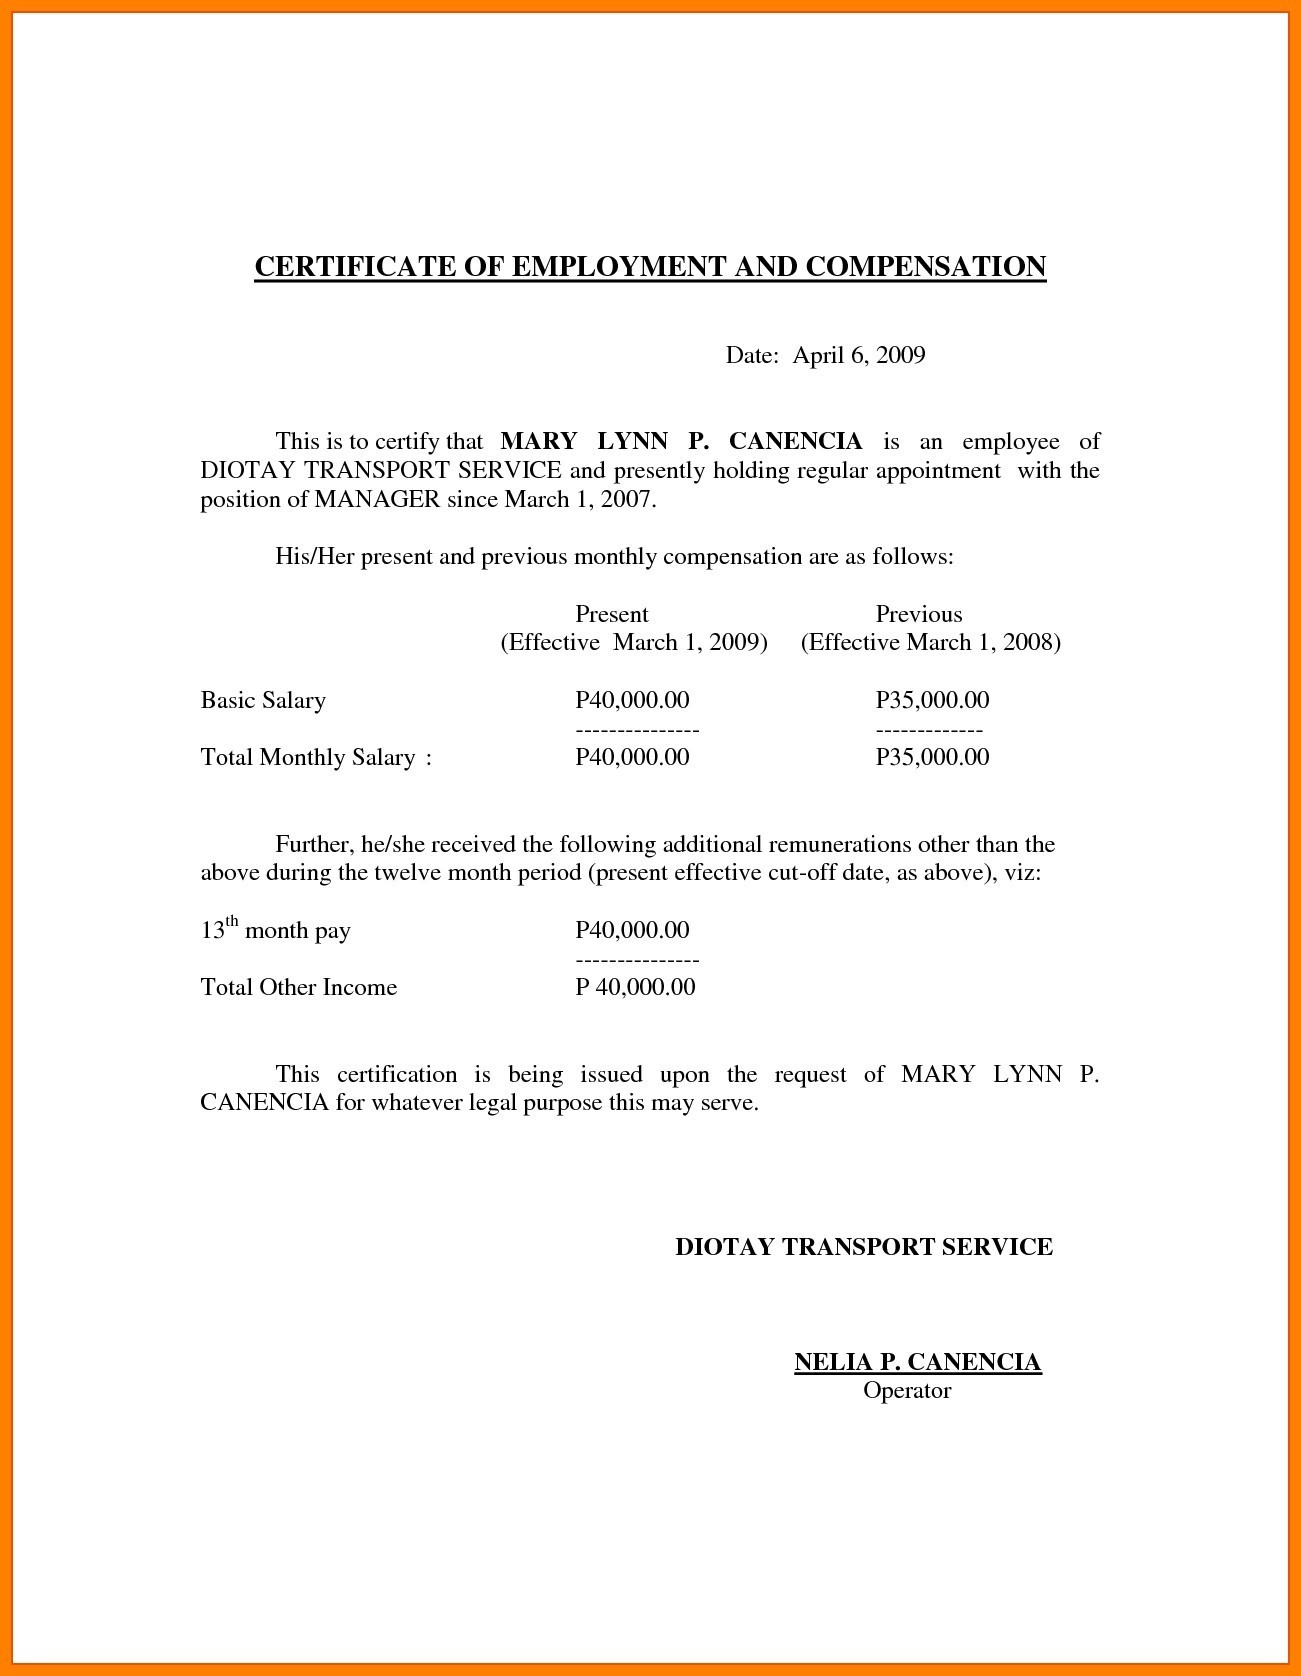 Letter Of Separation From Employer Template - Sample format Certificate Employment with Pensation New